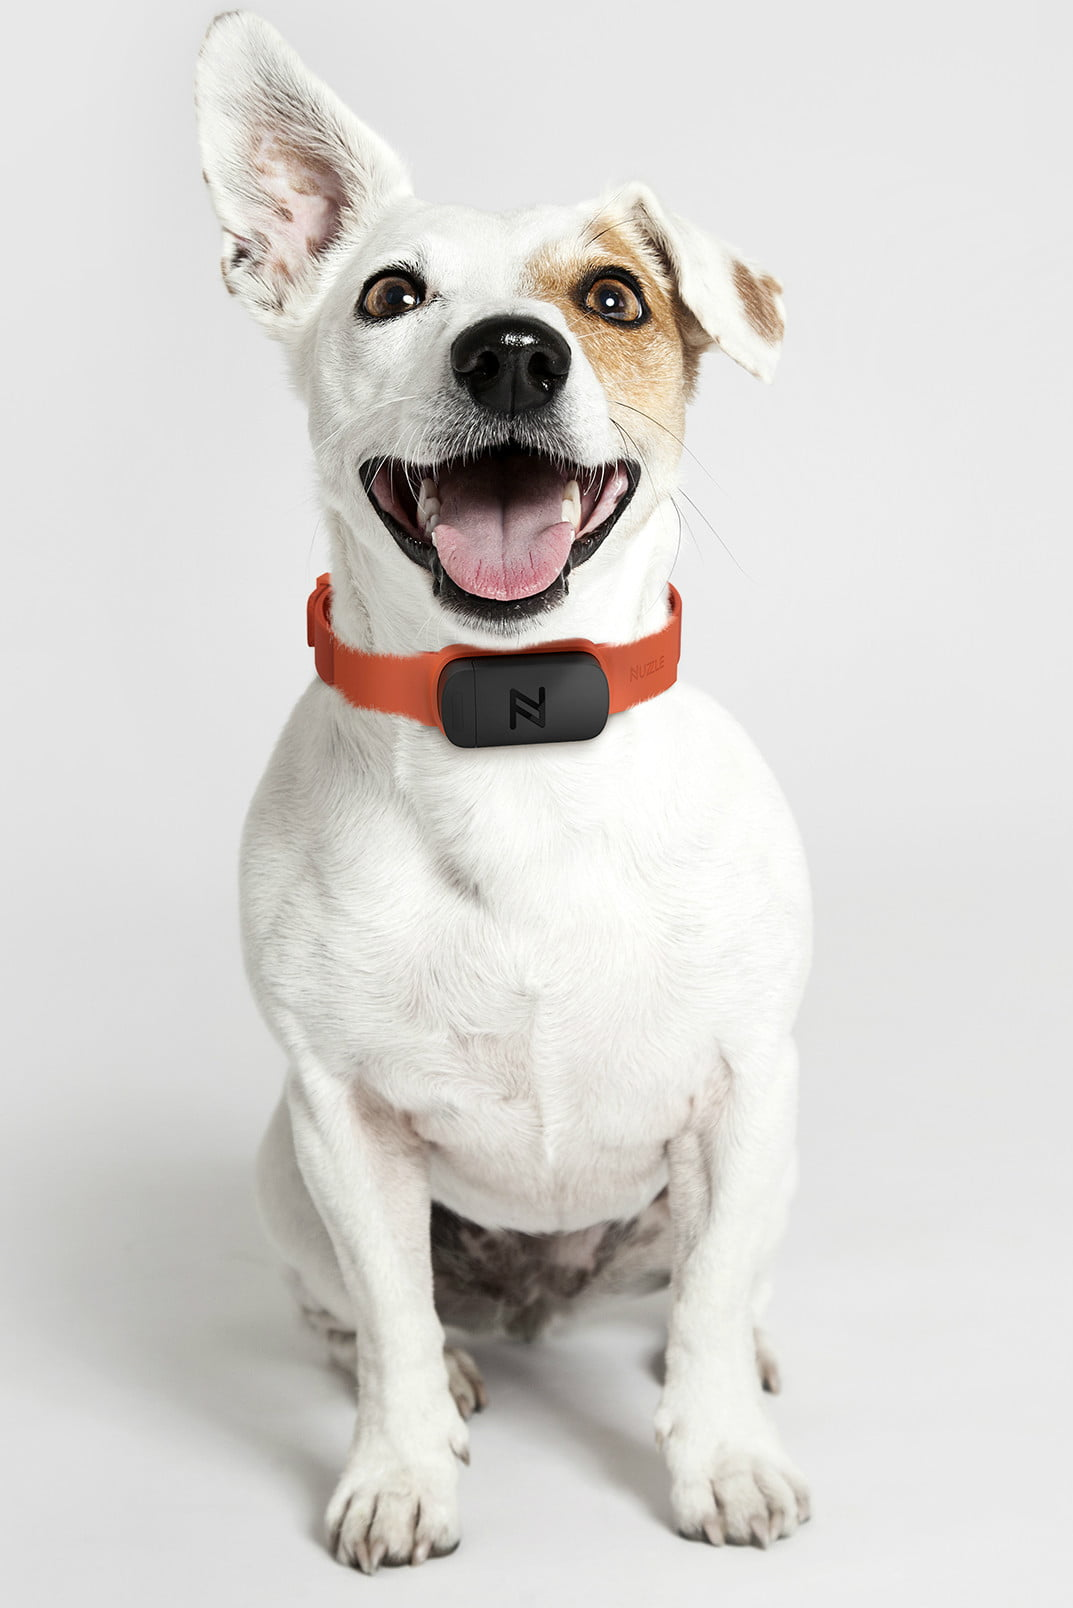 Nuzzle Collar Offers Pet Tracking and Insurance | Digital ...